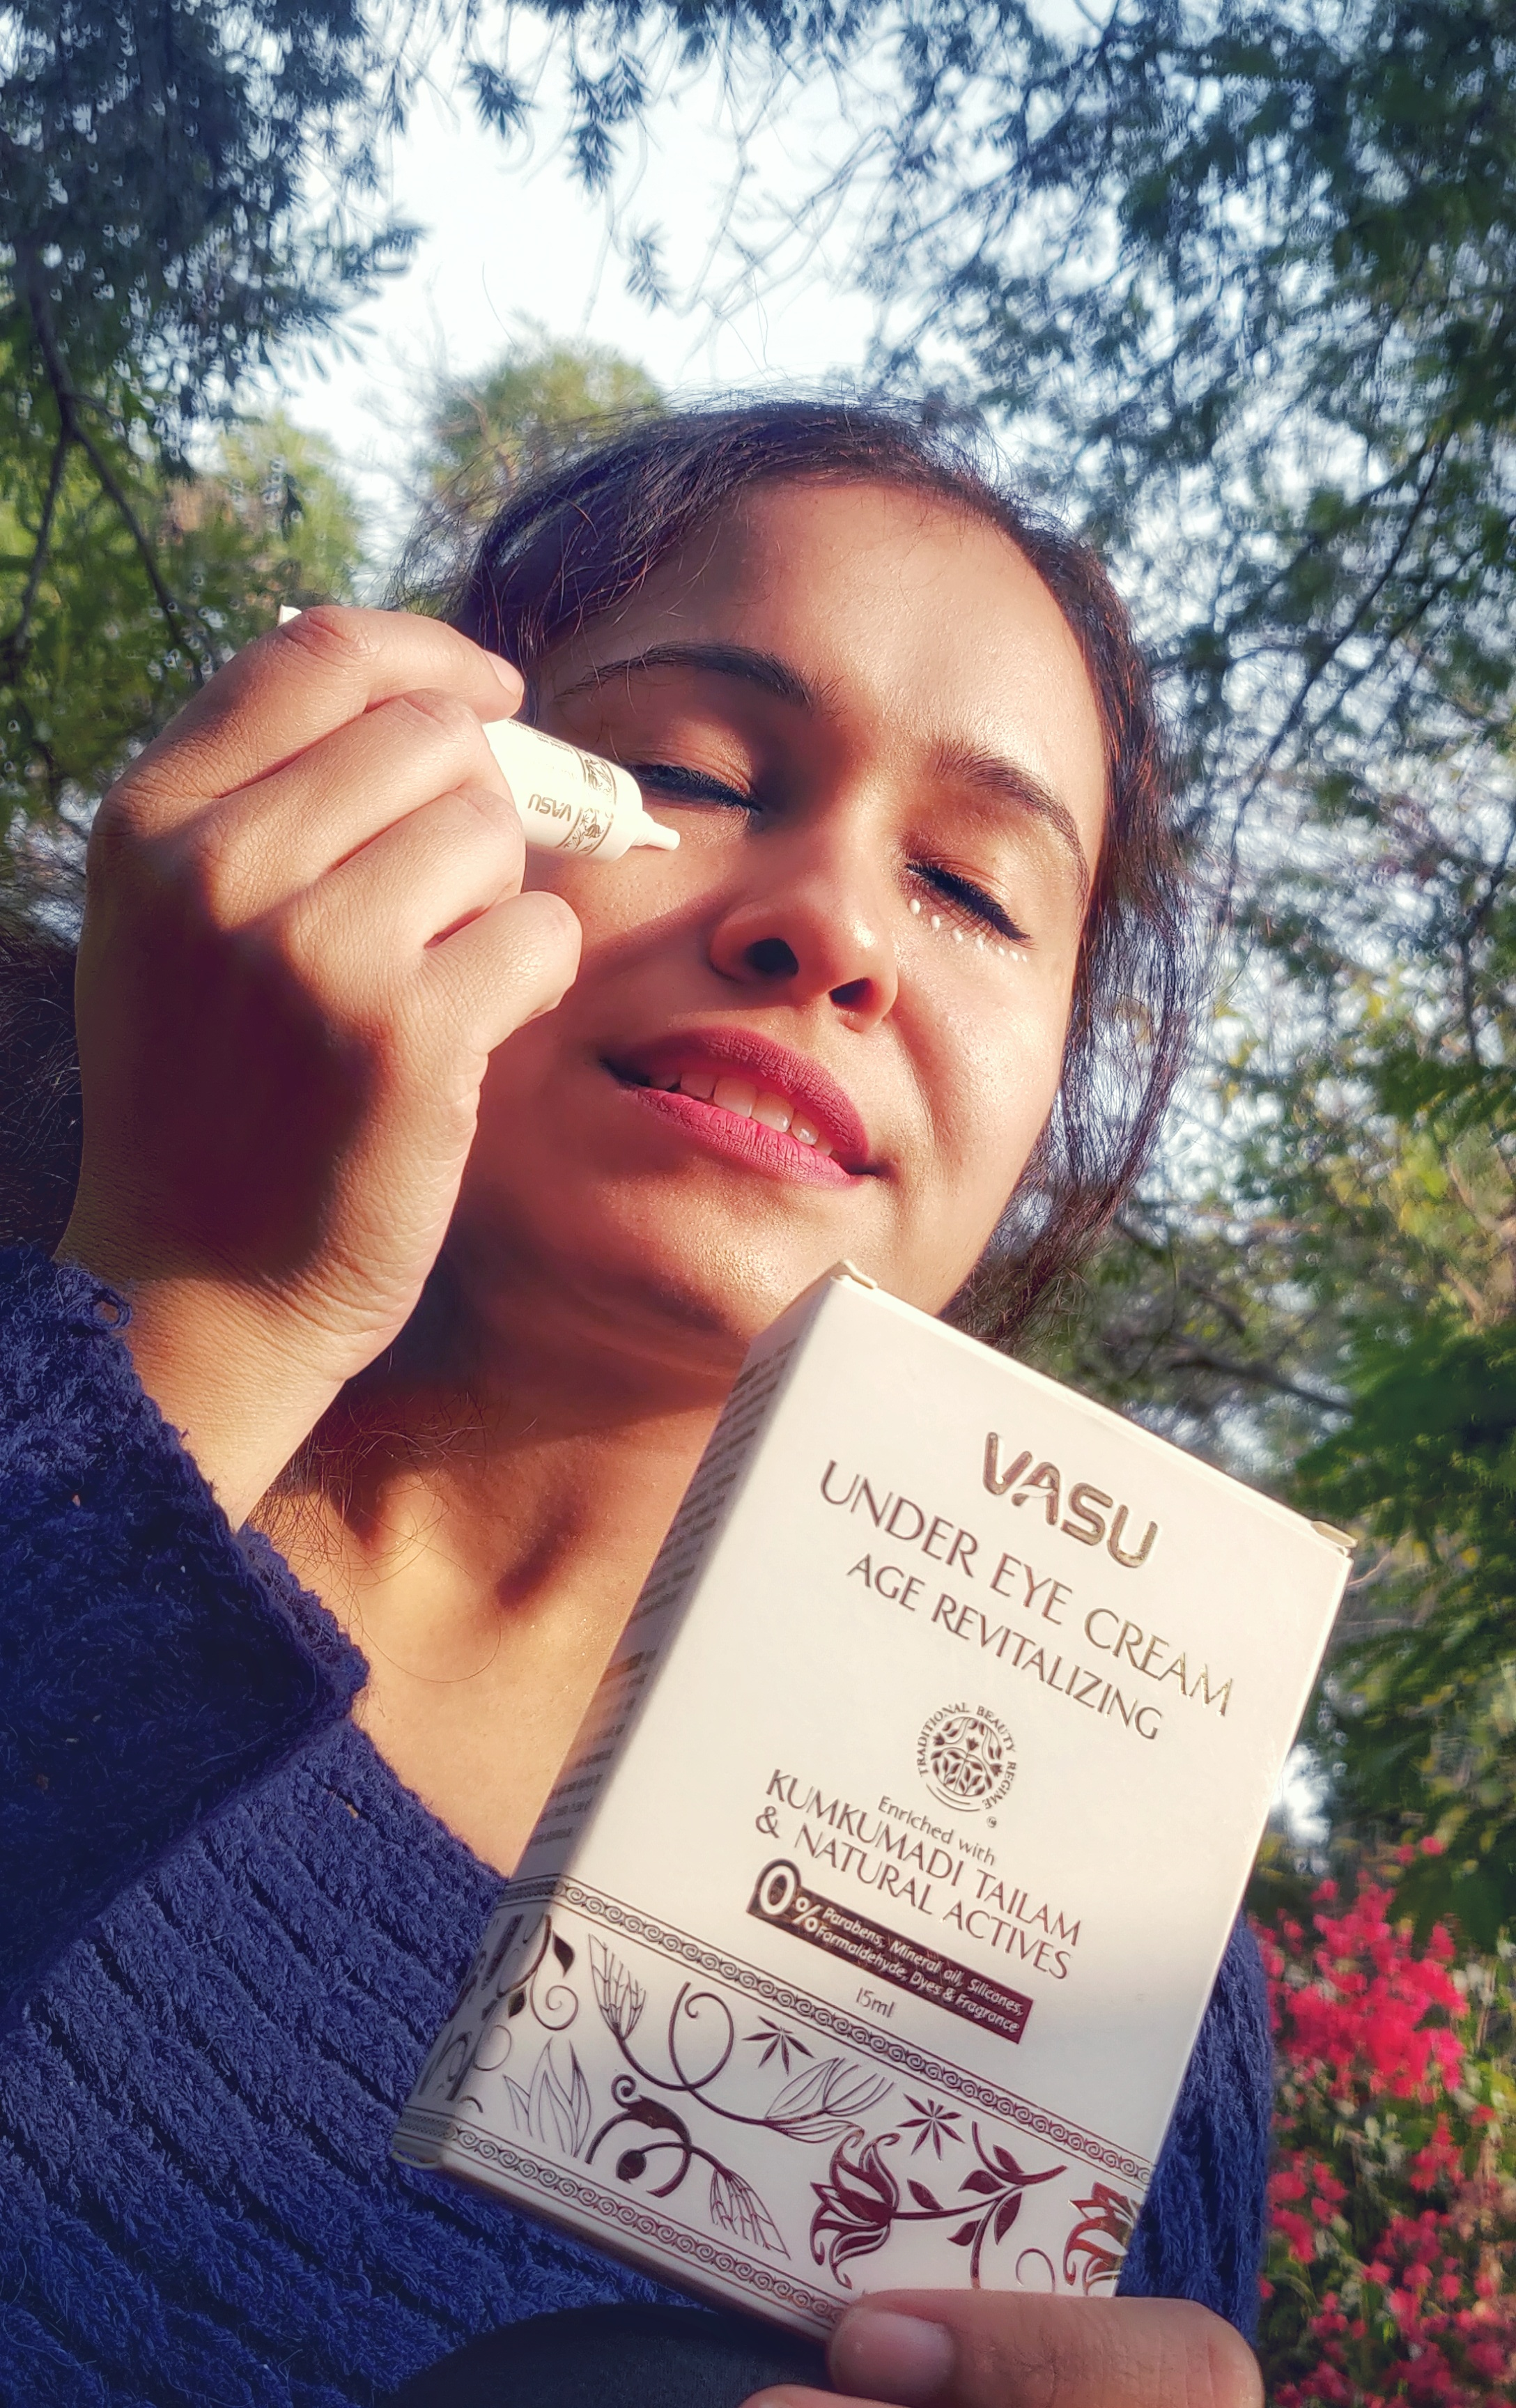 Vasu Age Revitalizing Under Eye Cream -Eye care-By taniyajoshi13